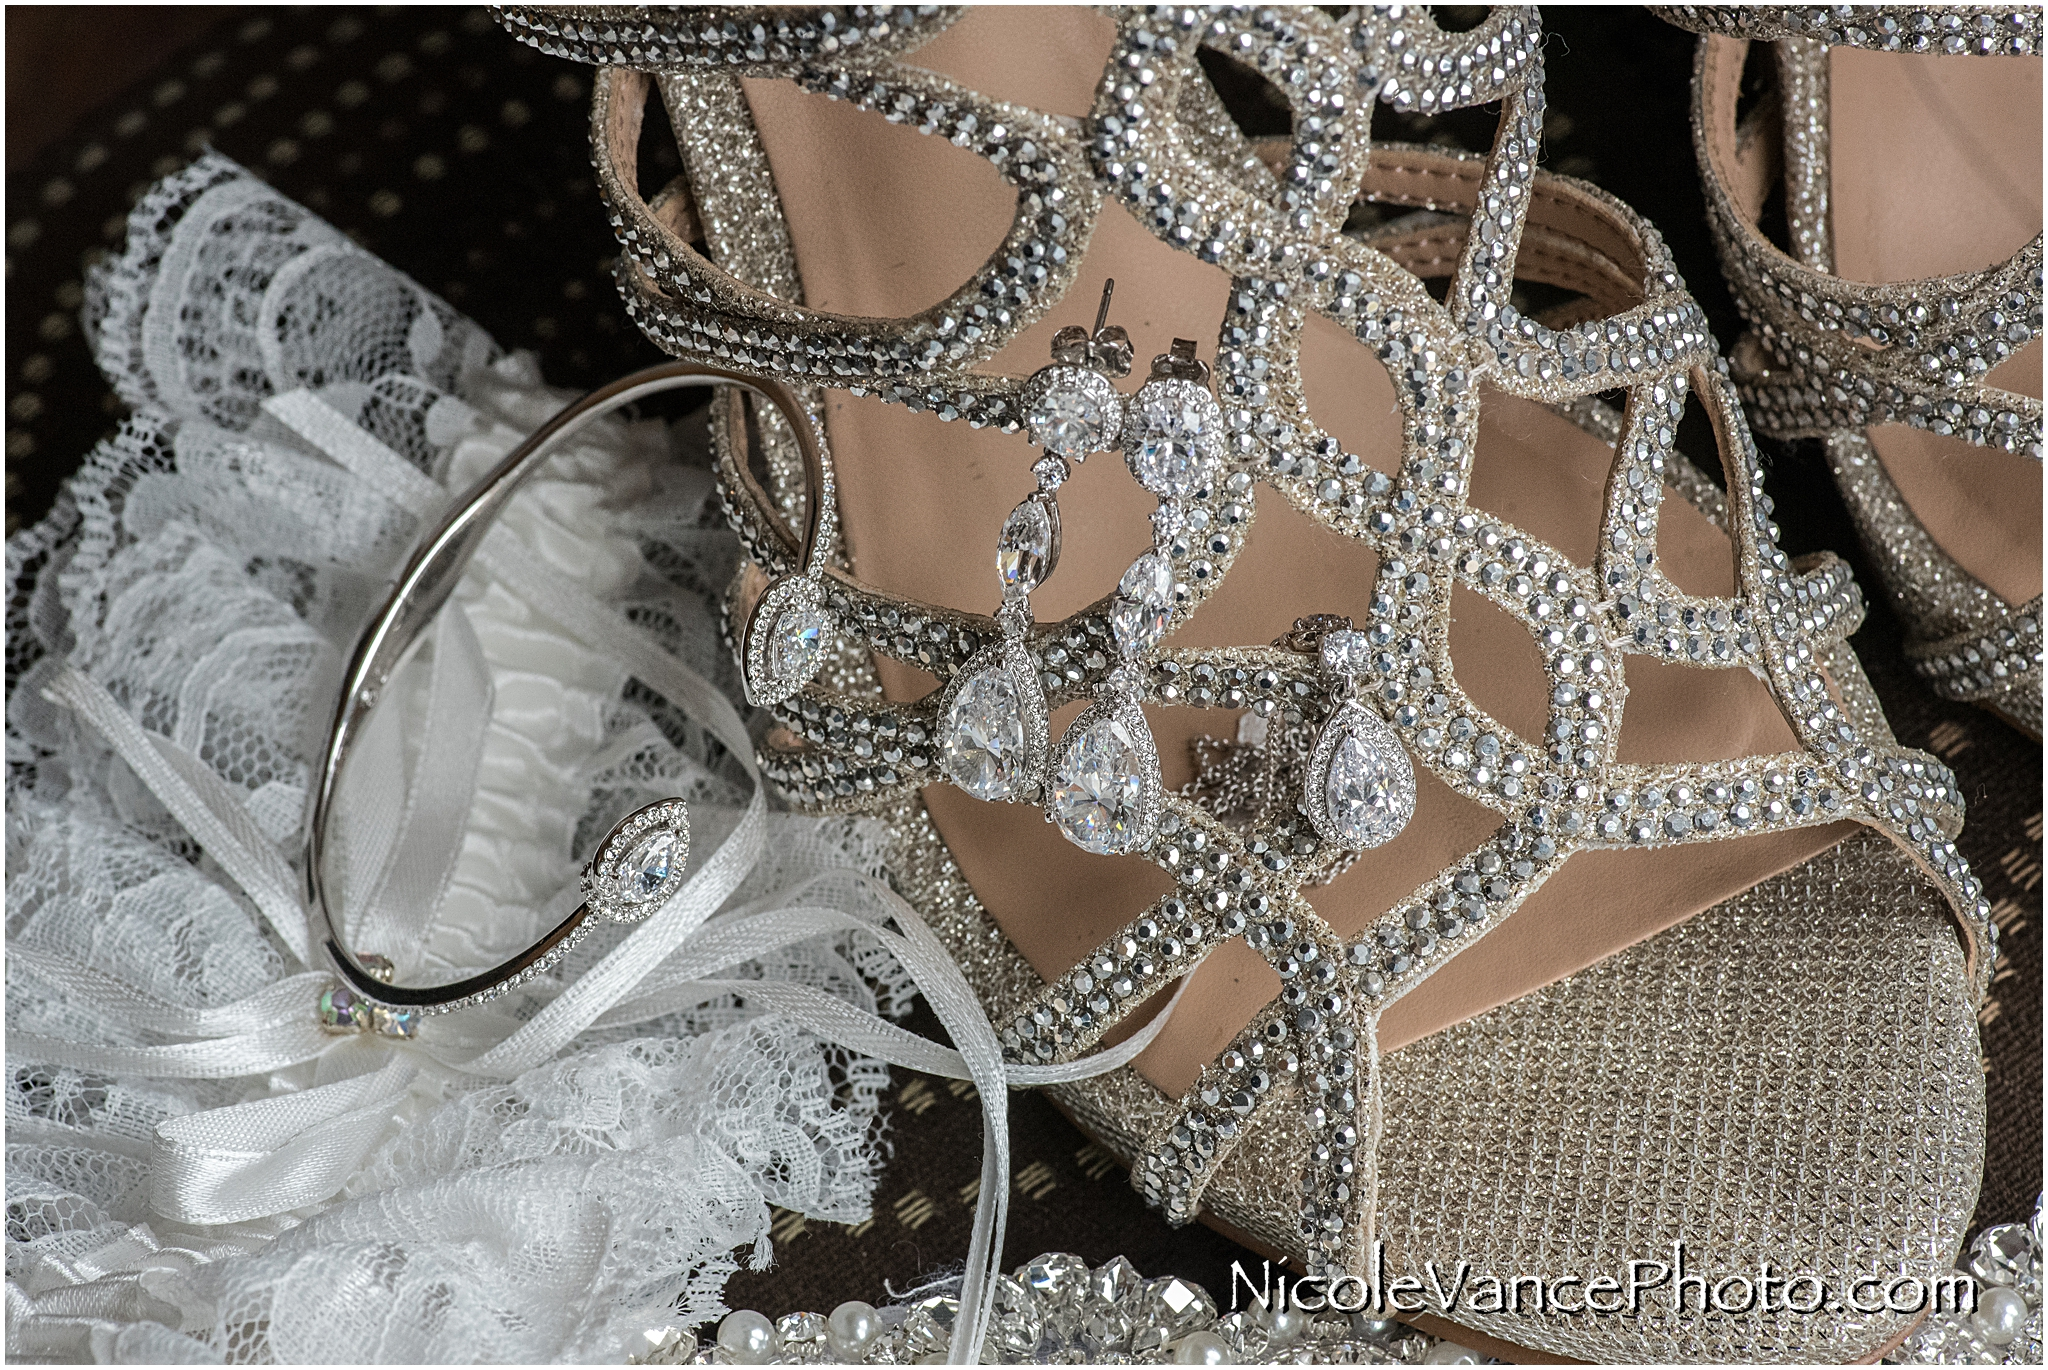 The bridal jewelry all matched perfectly!